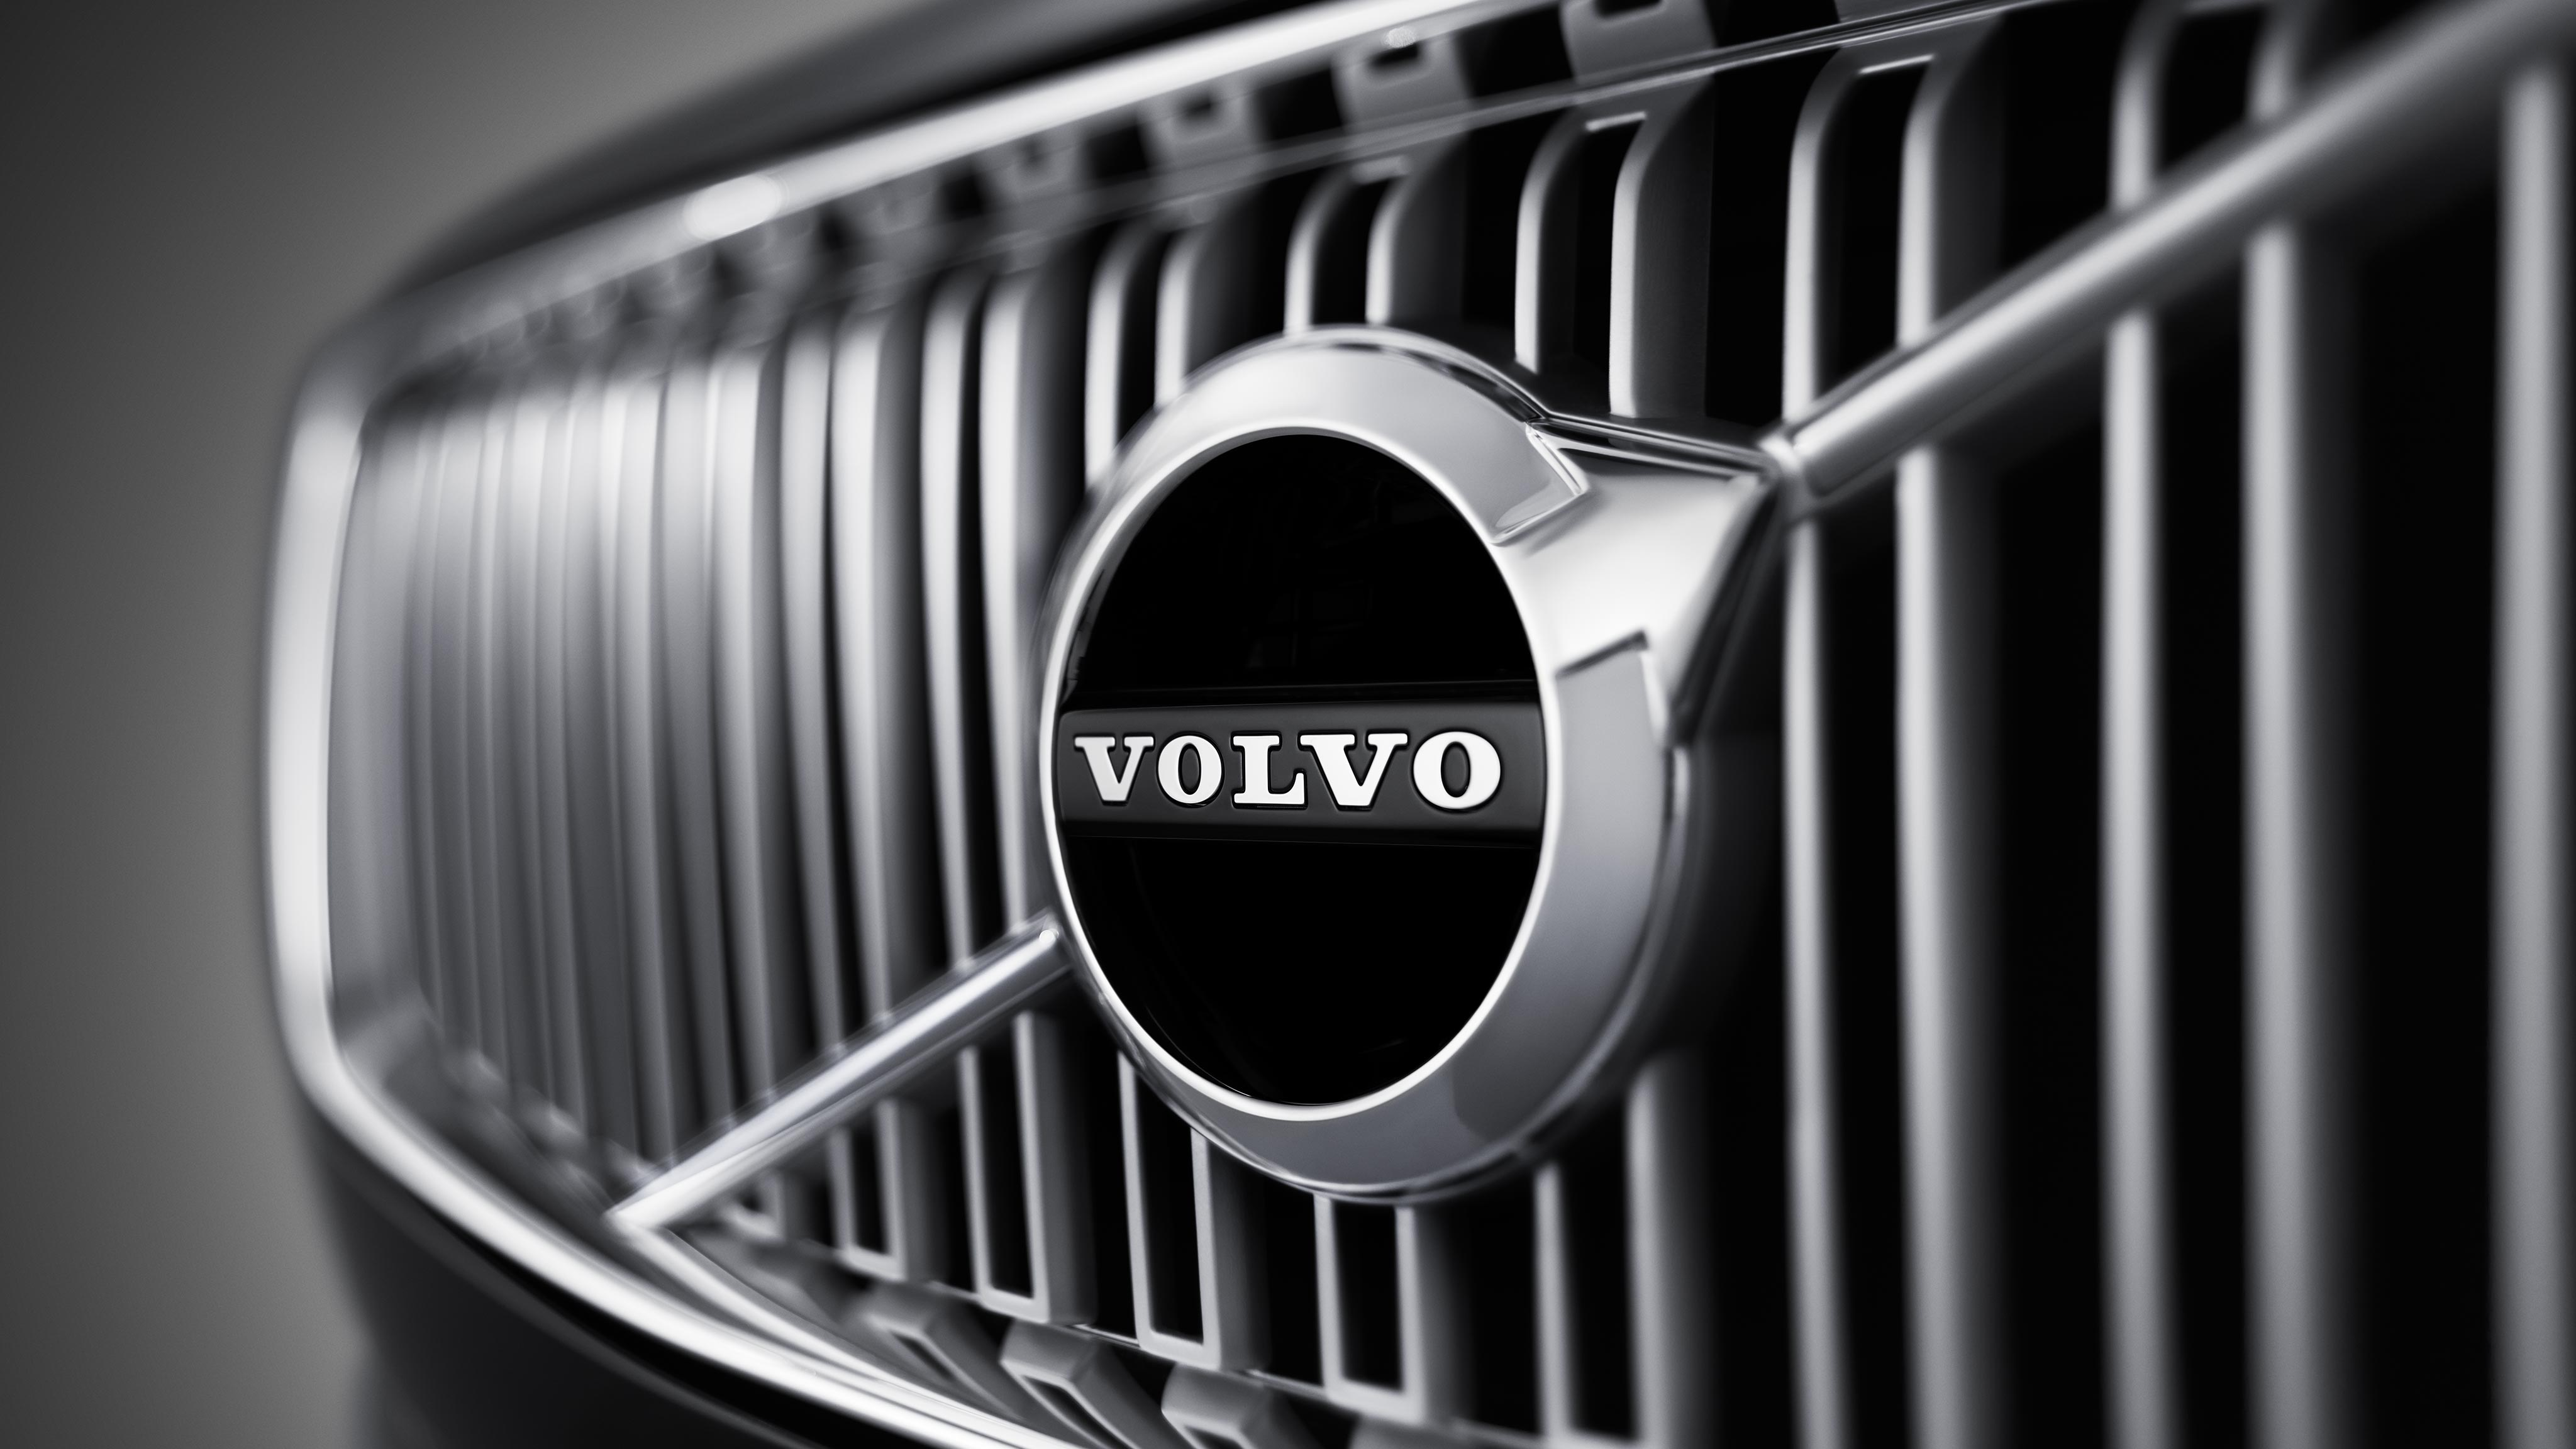 k volvo centers north of opening indianapolis mk parts grand truck img m america